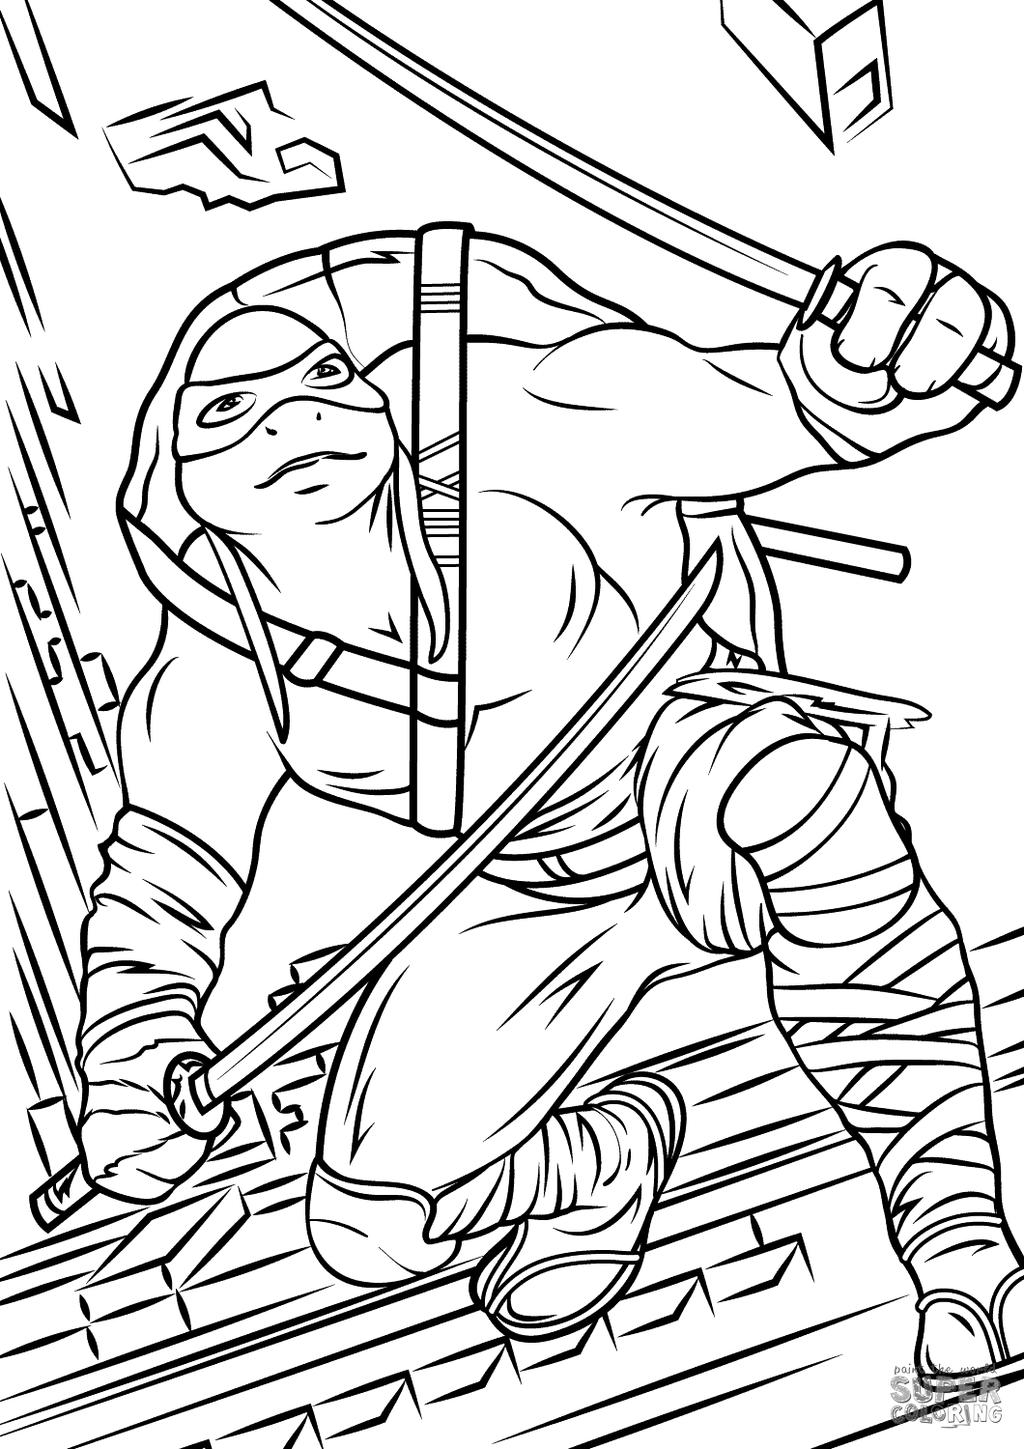 Ninja Turtles Coloring Pages Leonardo From